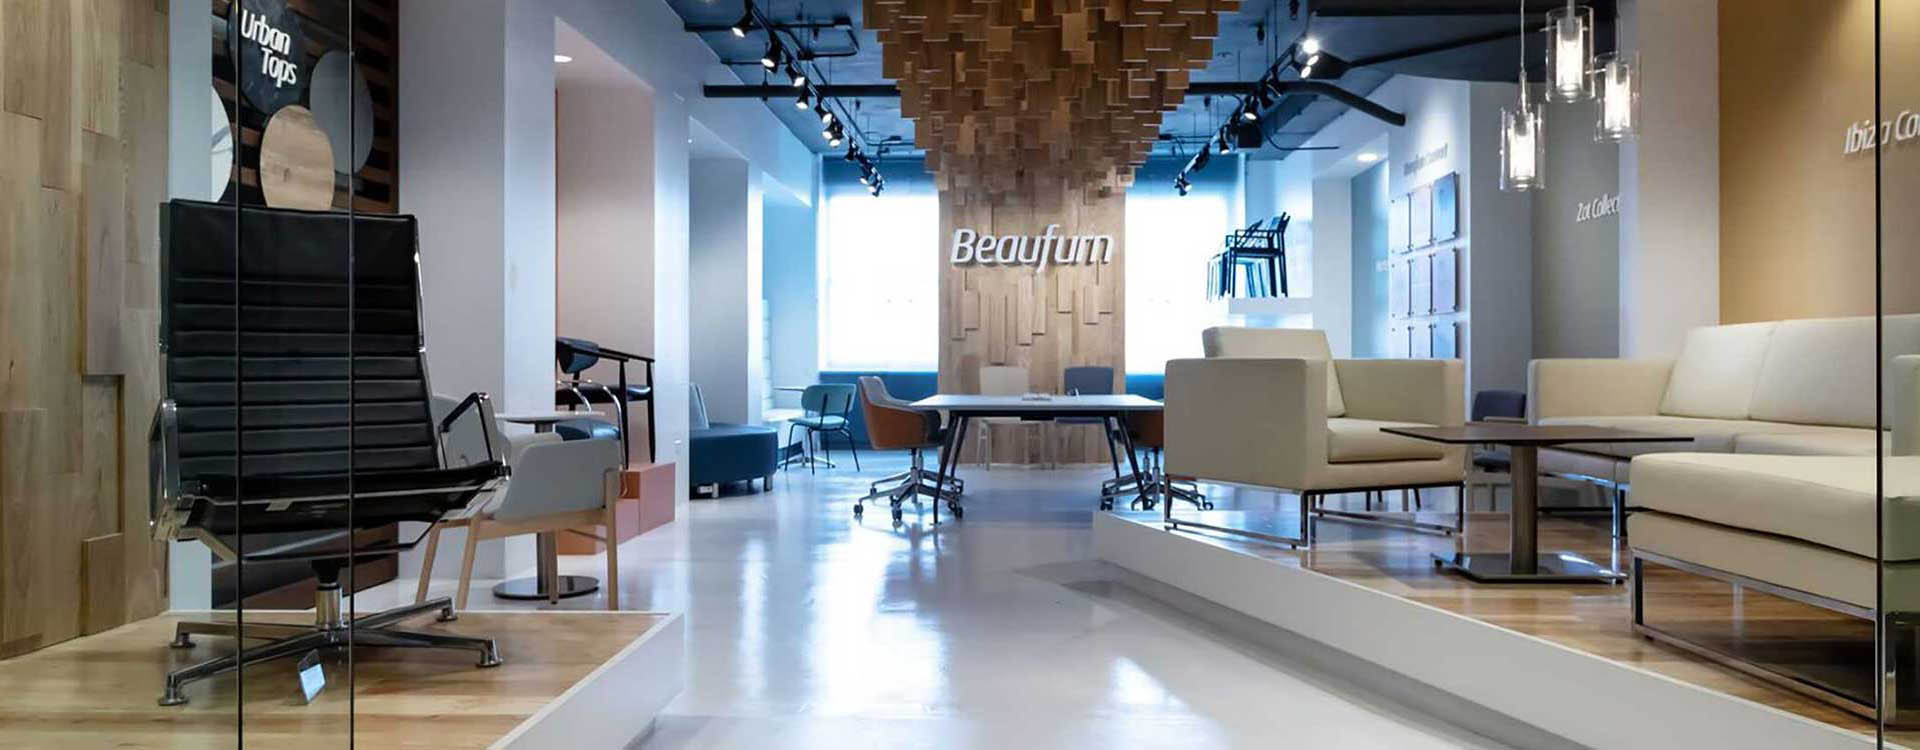 Beaufurn Showroom